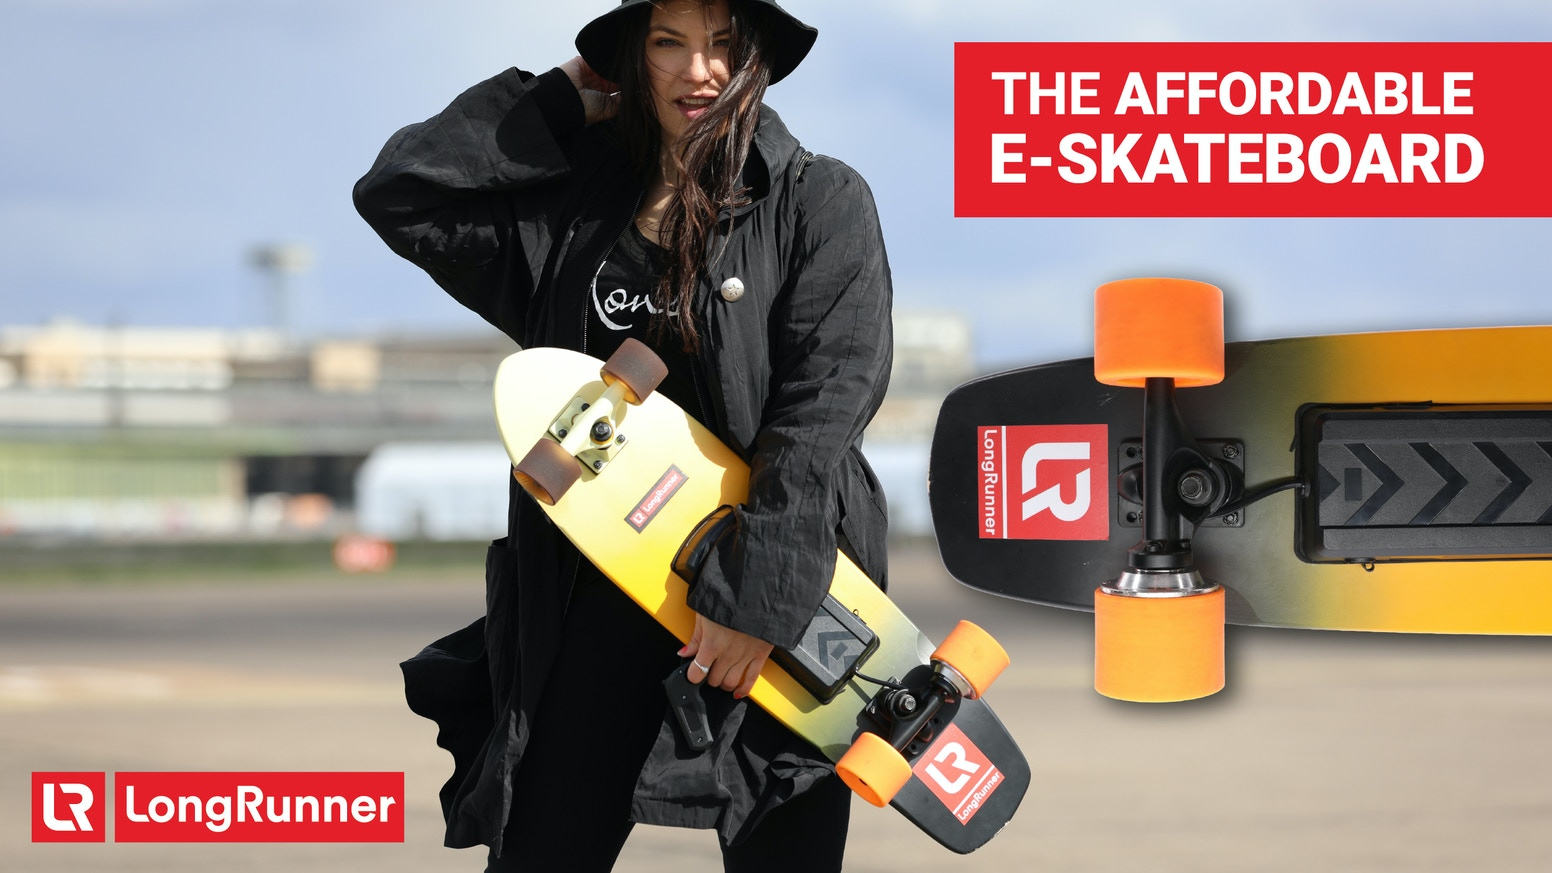 We managed to create a real high-power electronic LongBoard for unbeatable low production costs - to give everyone the eSkate Feeling!